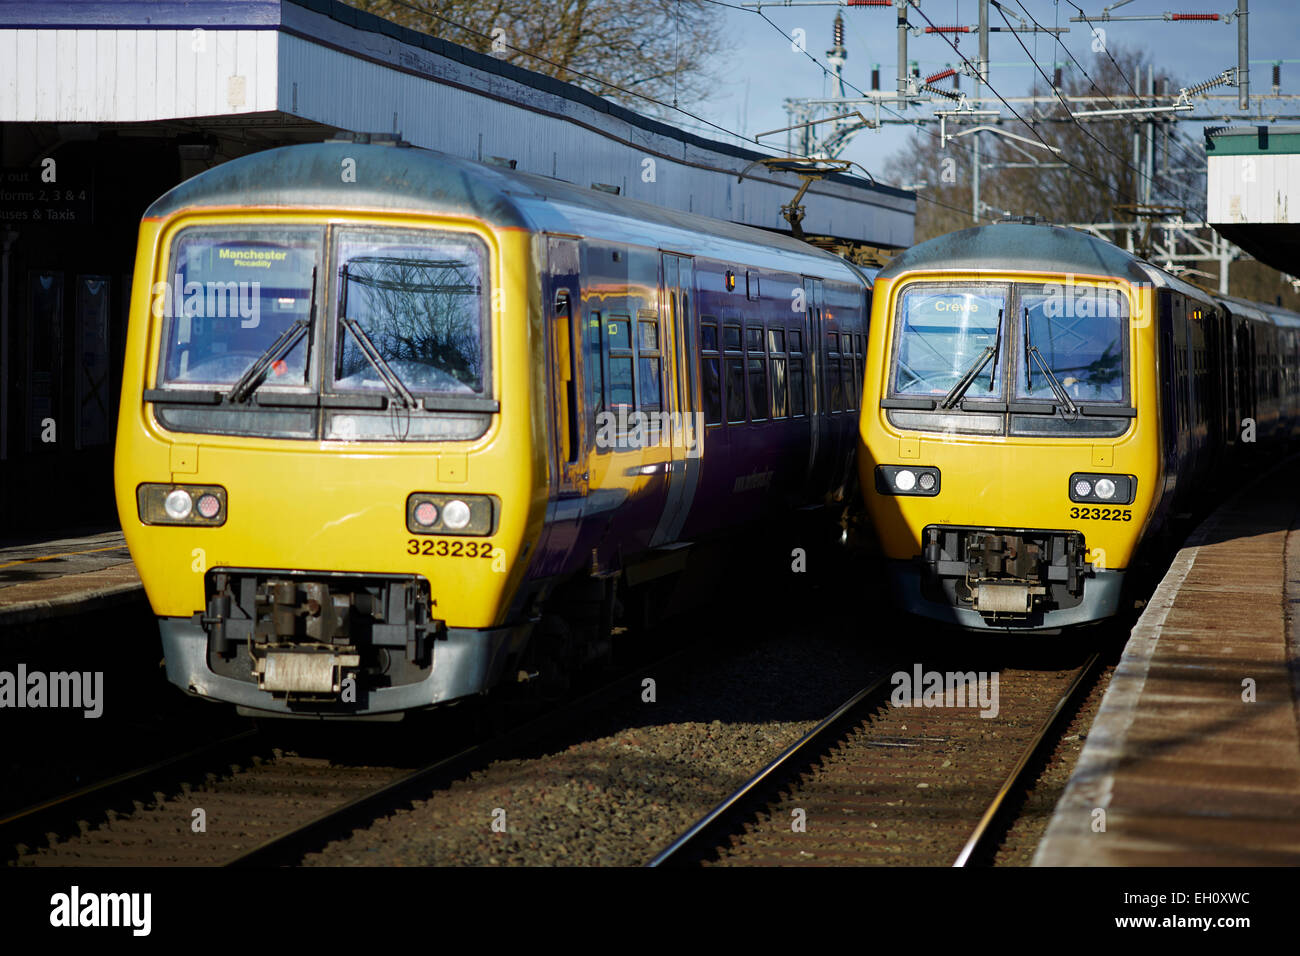 Railway units Local stopping trains at Wilmslow railway station - Stock Image